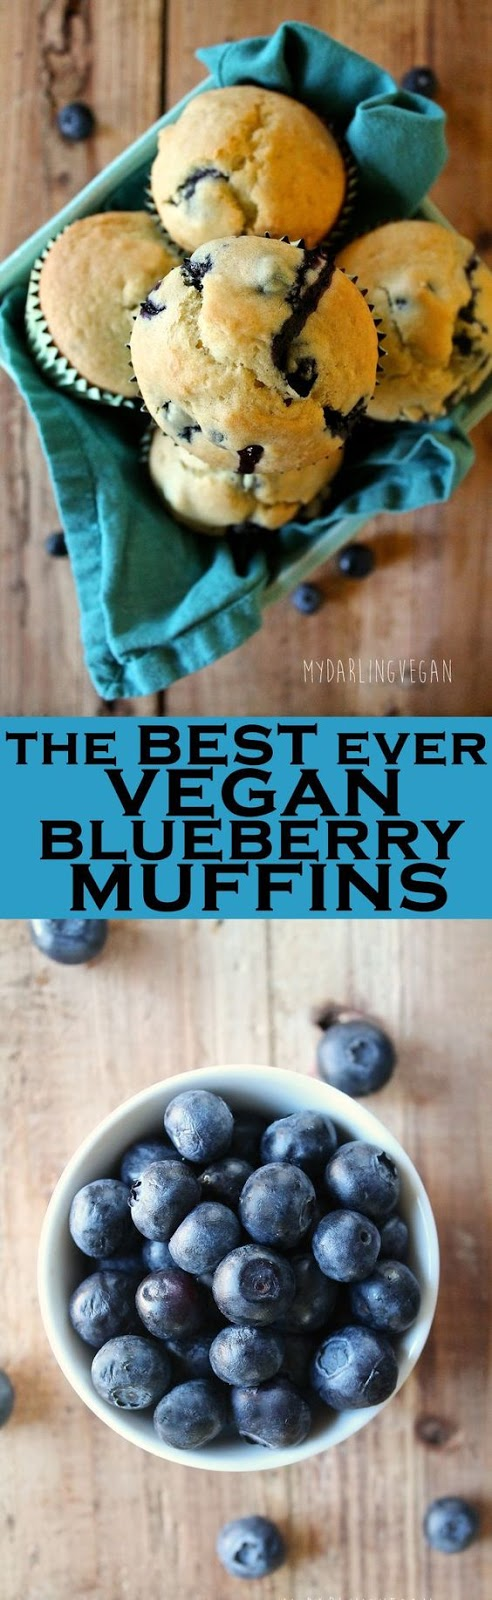 These vegan blueberry muffins are the perfect combination of sweet, flaky, buttery, and zesty. Check out why everyone is loving it by clicking the photo above!